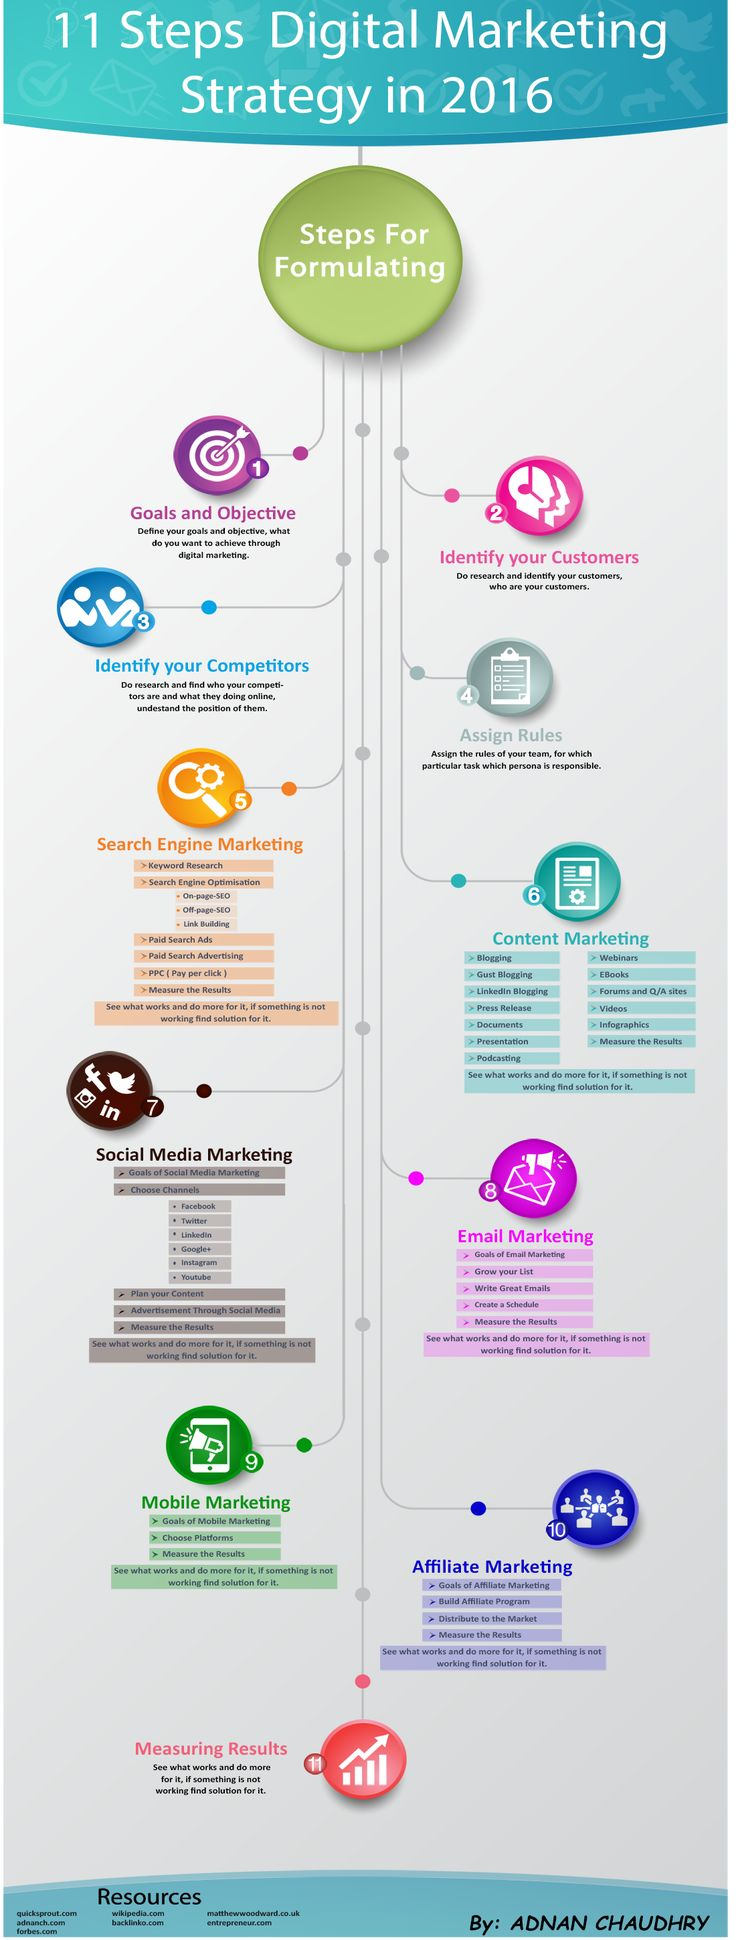 http://dingox.com 11 steps digital marketing strategy for 2016 [ Infographic ]…